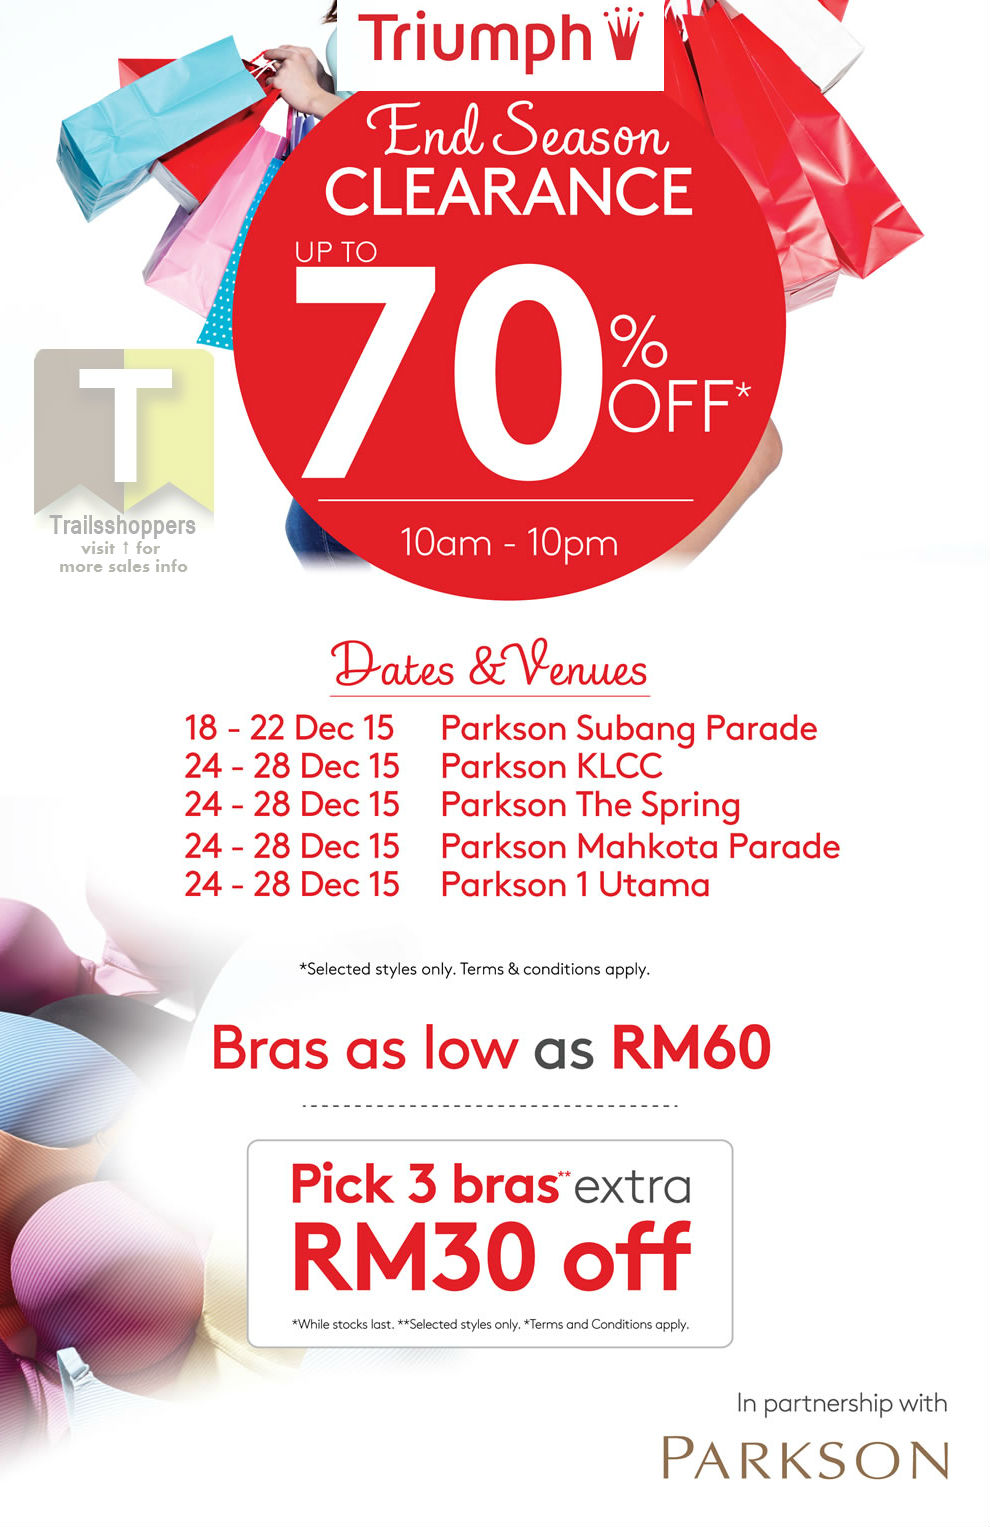 Parkson Triumph Year End Clearance 2015